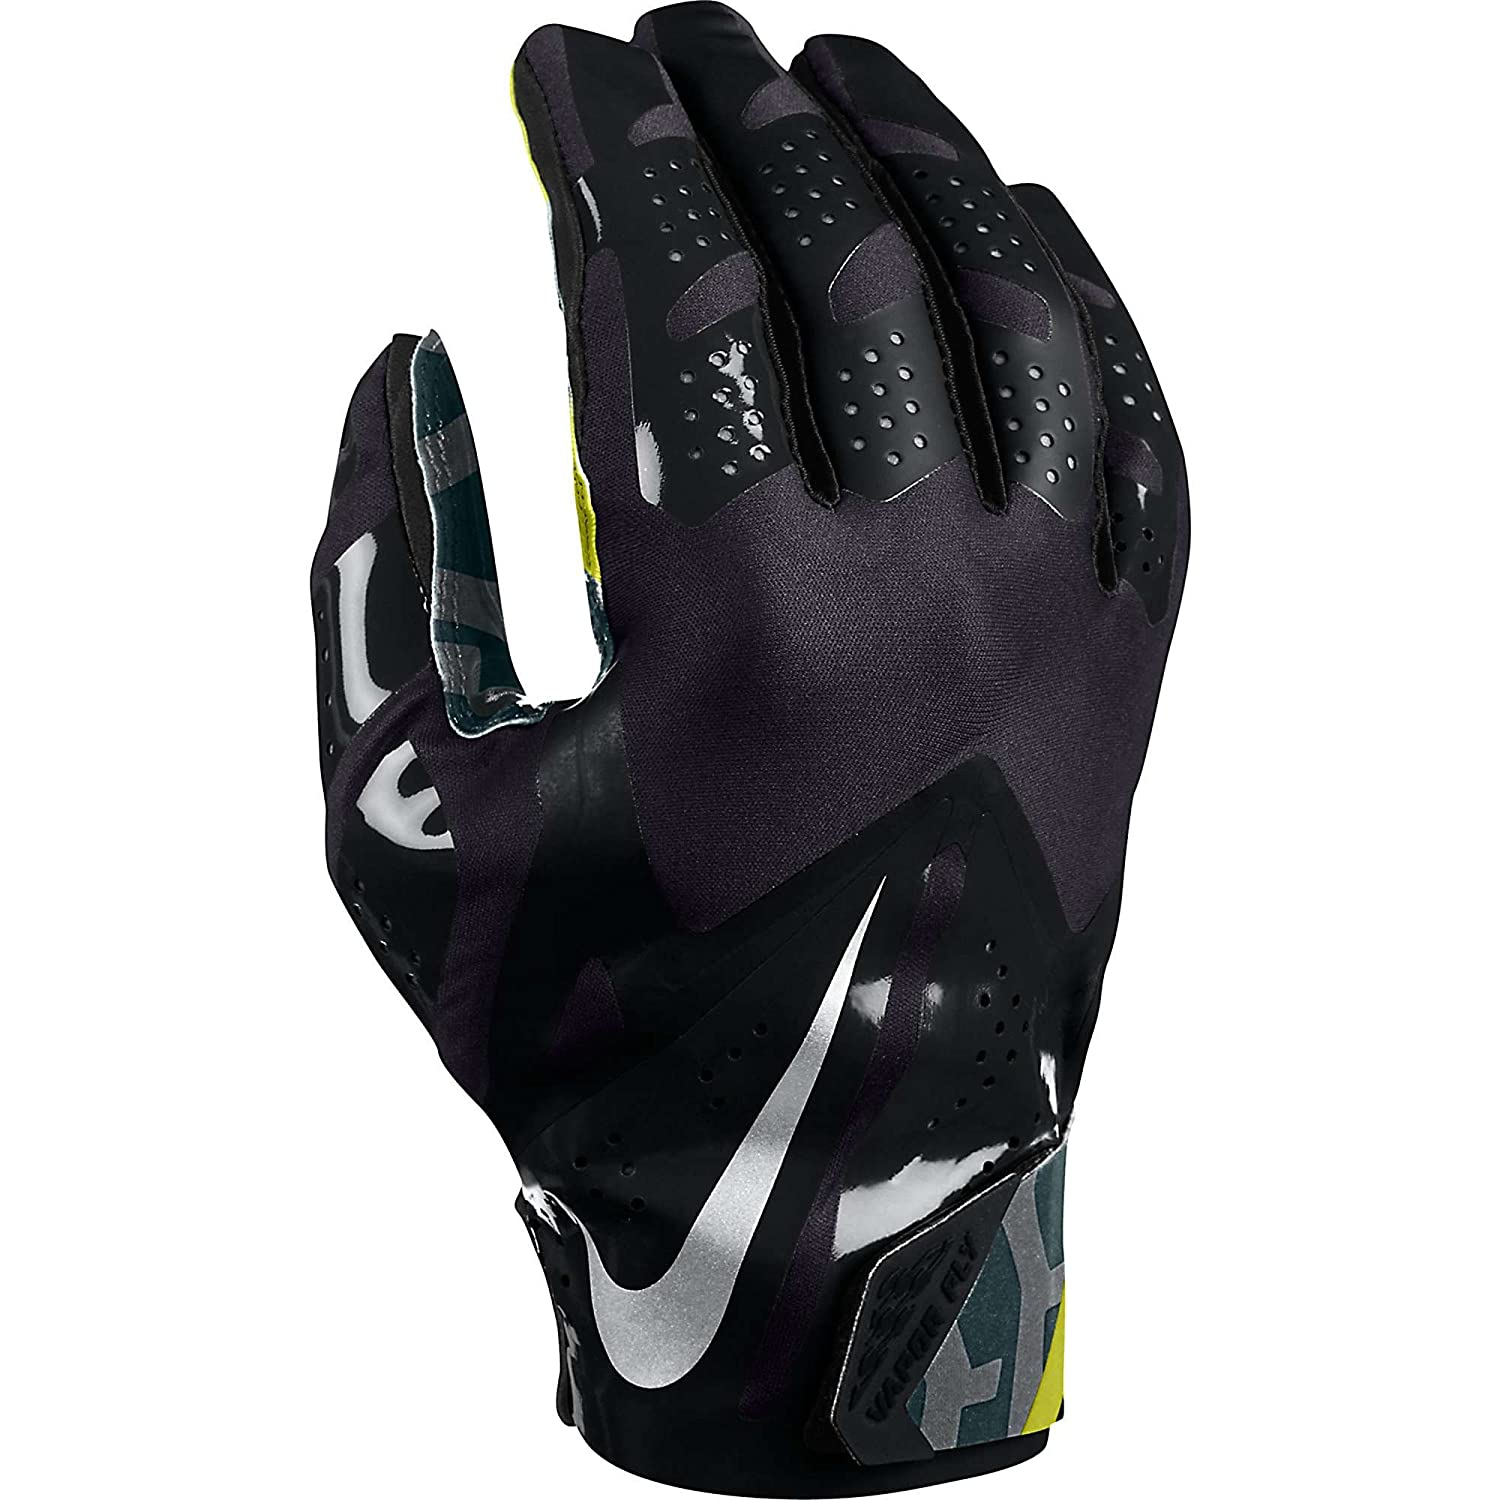 8e31babad62fa Amazon.com   Men s Nike Vapor Fly Reciever Football Glove Black Black Black Metallic  Silver Size Small   Football Receiving Gloves   Sports   Outdoors